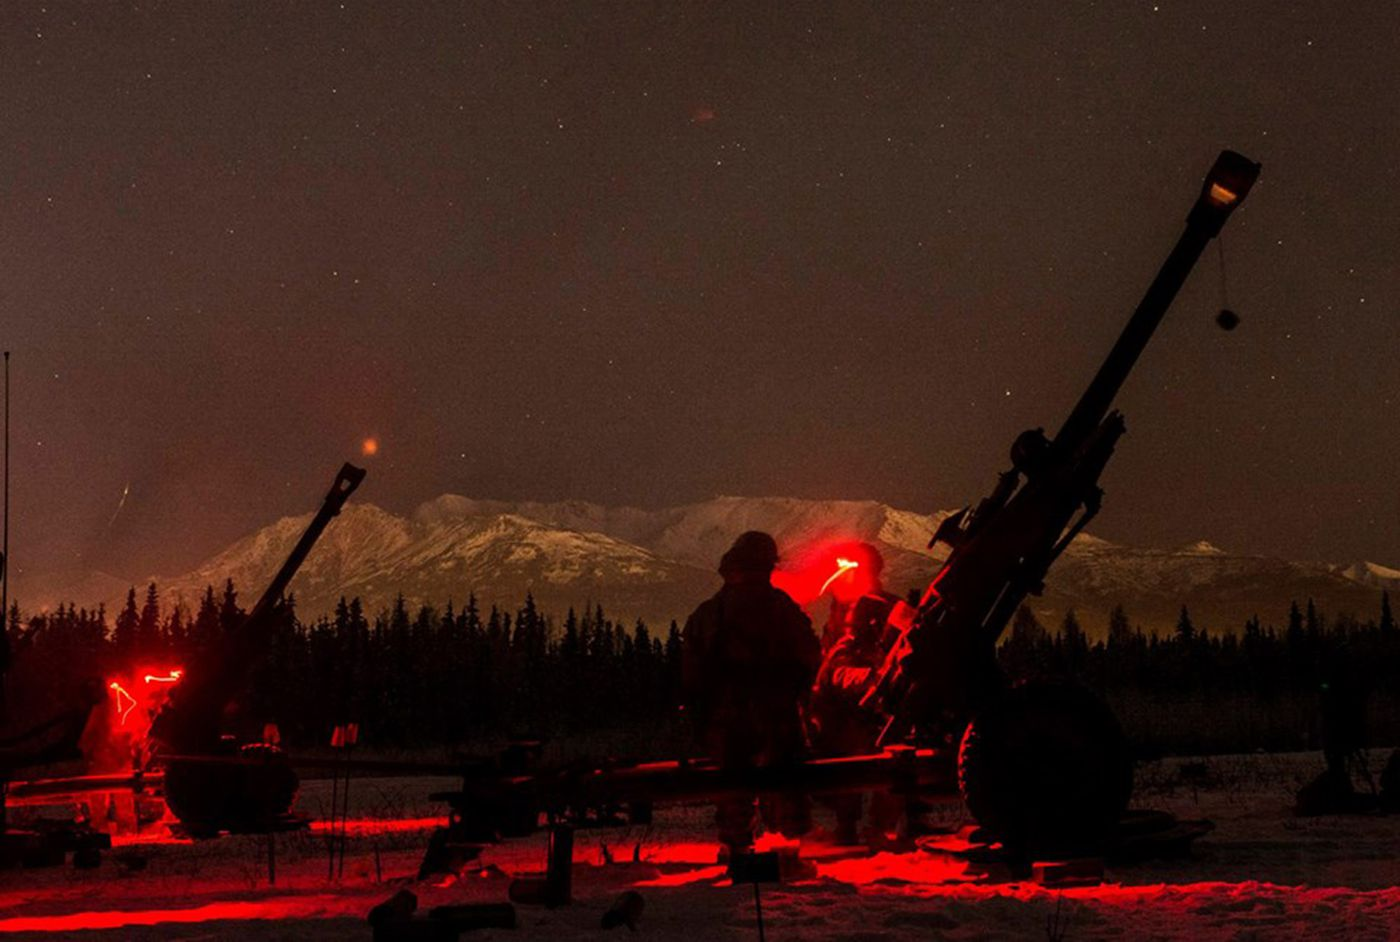 U.S. Army paratroopers assigned to 4th Brigade Combat Team (Airborne), 25th Infantry Division fire 105mm howitzers during a 2014 night-fire training event at Joint Base Elmendorf-Richardson, Alaska. (U.S. Army photo by Staff Sgt. Daniel Love)